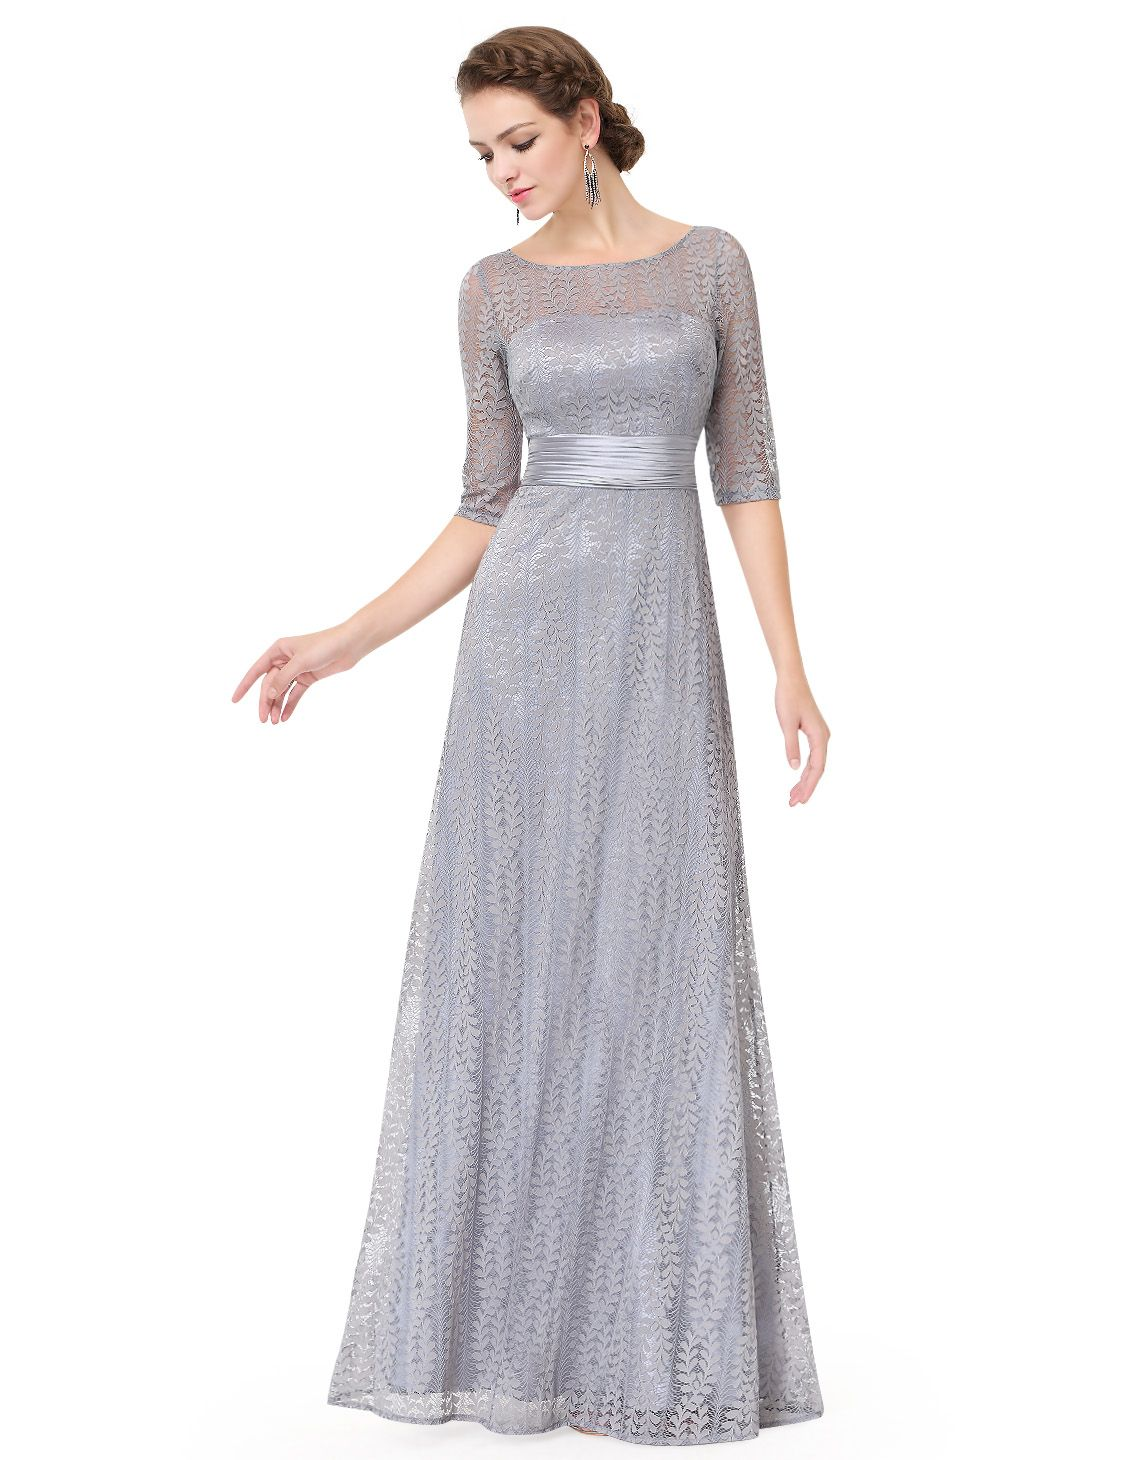 f37a0c4f200 Ever-Pretty Women s Elegant Long A-Line Floral Lace Formal Evening Wedding  Guest Mother of the Bride Dresses 08878 for Women Grey 4 US Floral